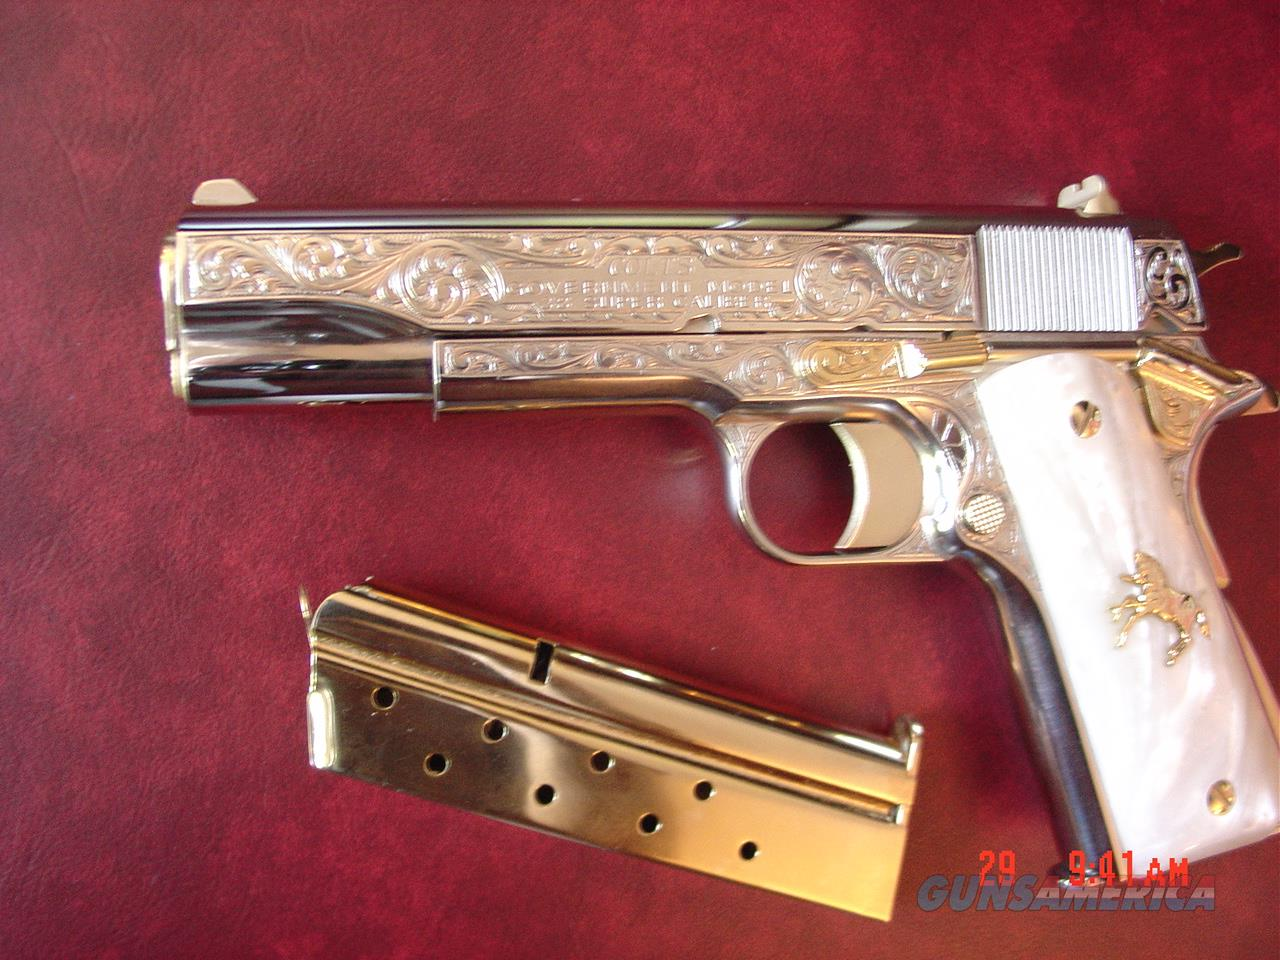 Colt Government 38 Super,master engraved by S.Leis with certificate,refinished bright nickel & gold accents,Pearlite grips,never fired. 1 of a kind showpiece !  Guns > Pistols > Colt Automatic Pistols (1911 & Var)